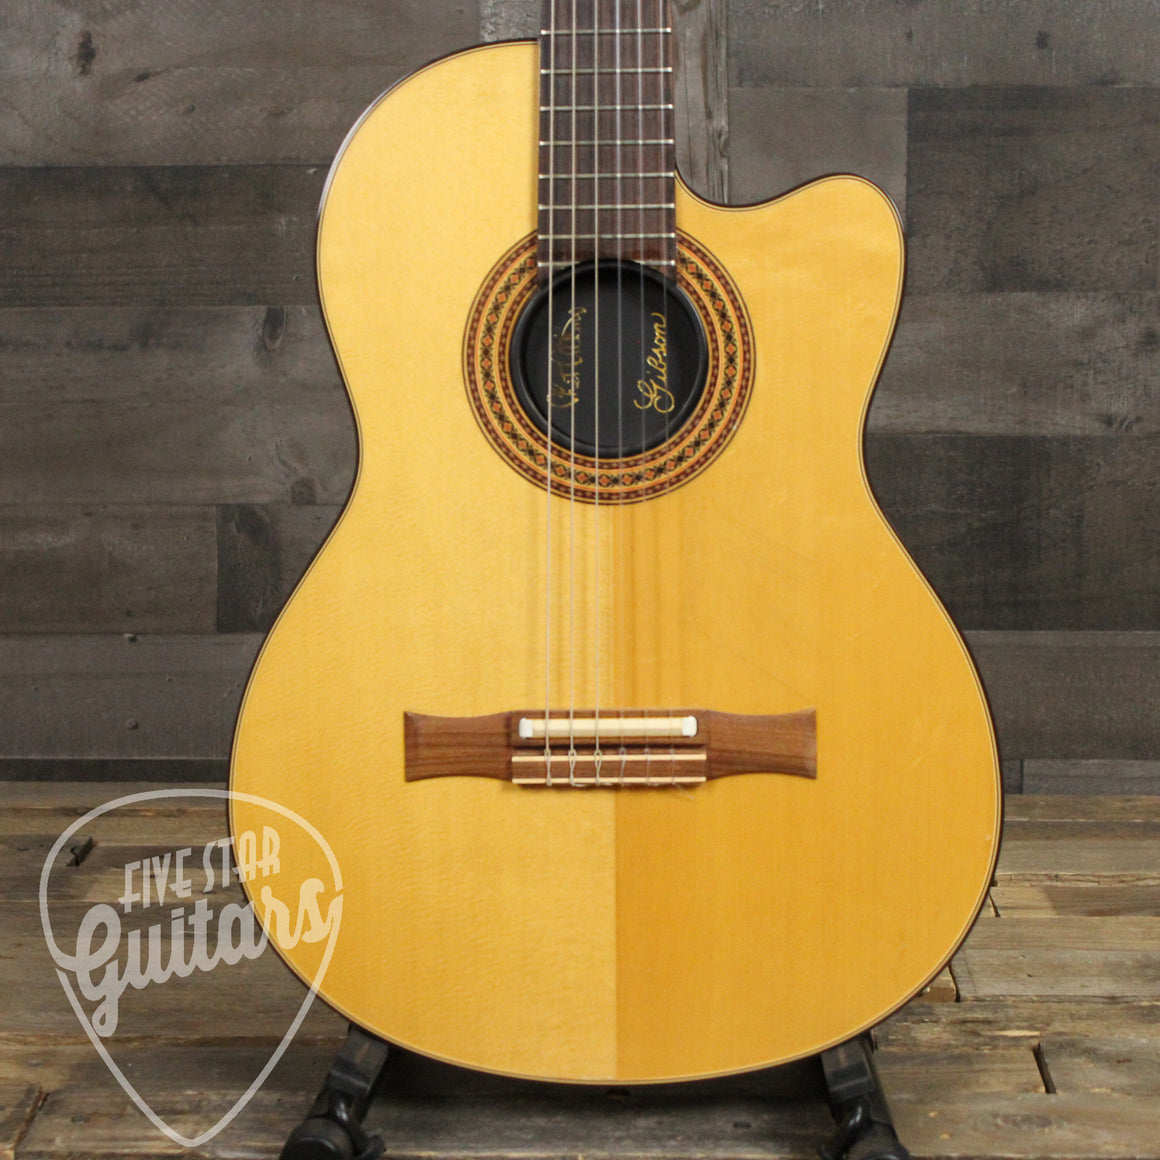 Pre-Owned 93 Gibson CE Natural